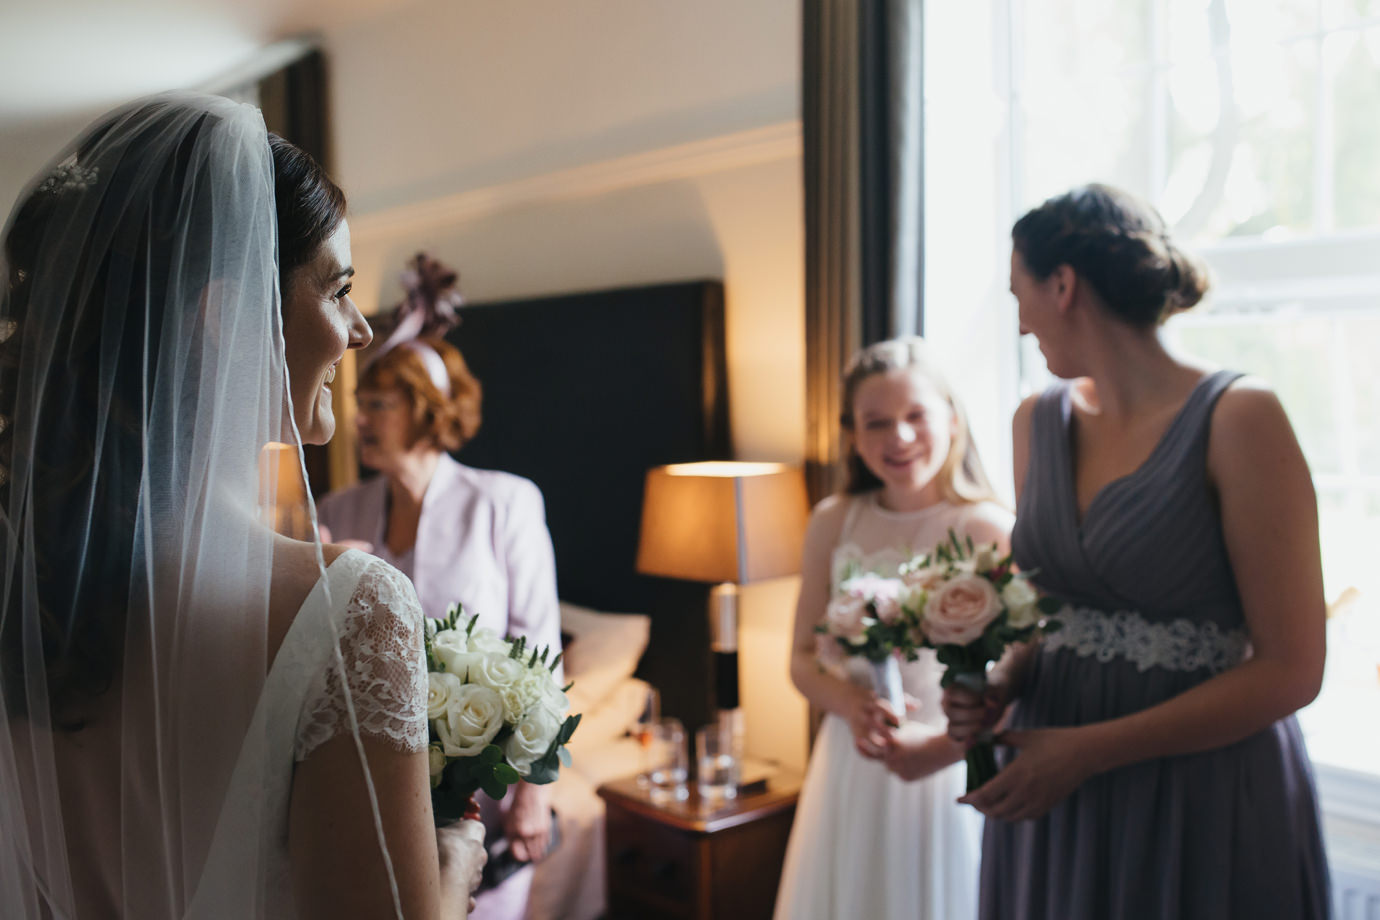 Reportage wedding photography at Hemswell court